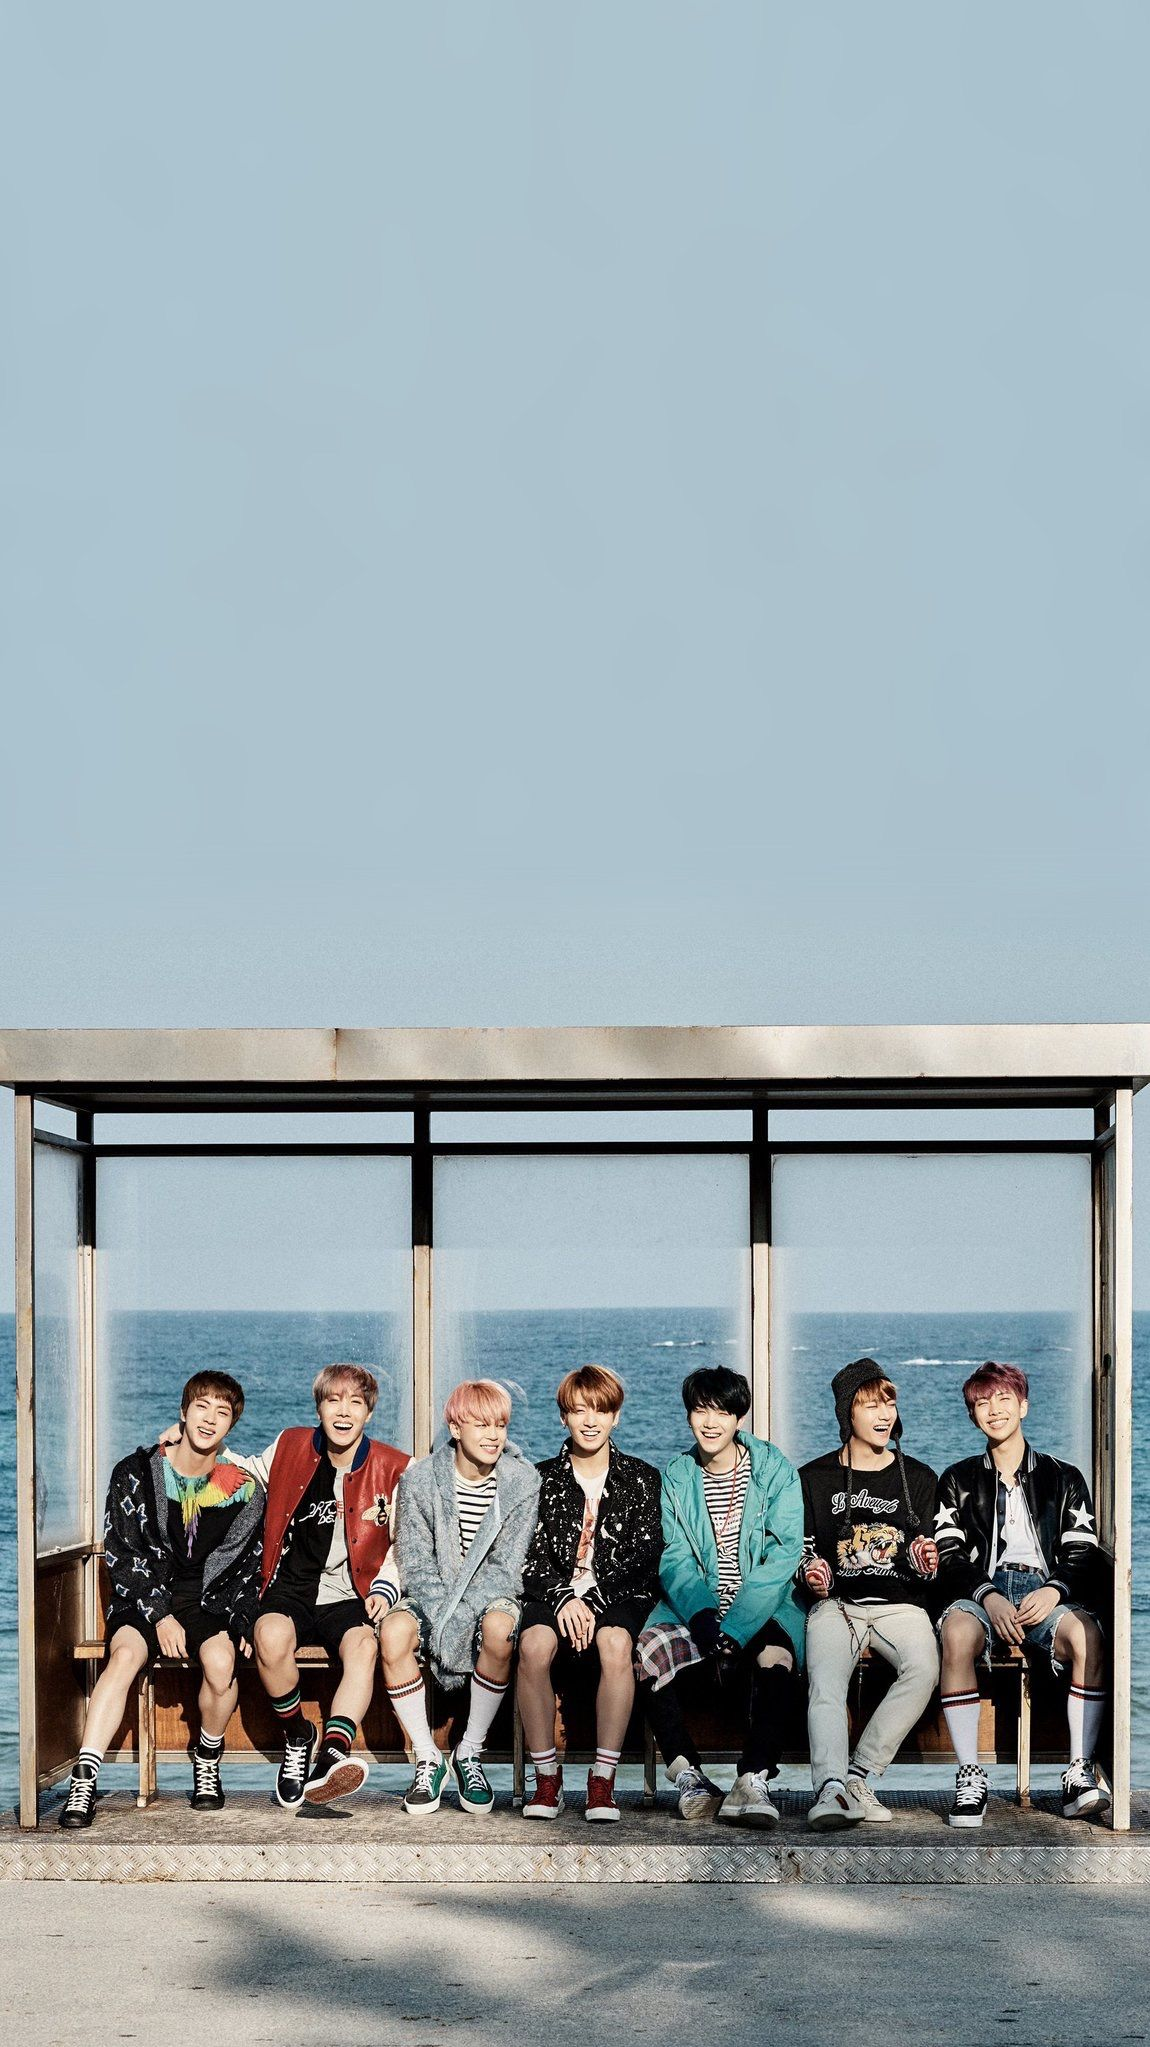 Great Wallpaper Home Screen Bts - 4bb657215bc06fb2822bbc424faab59c  2018_487859.jpg